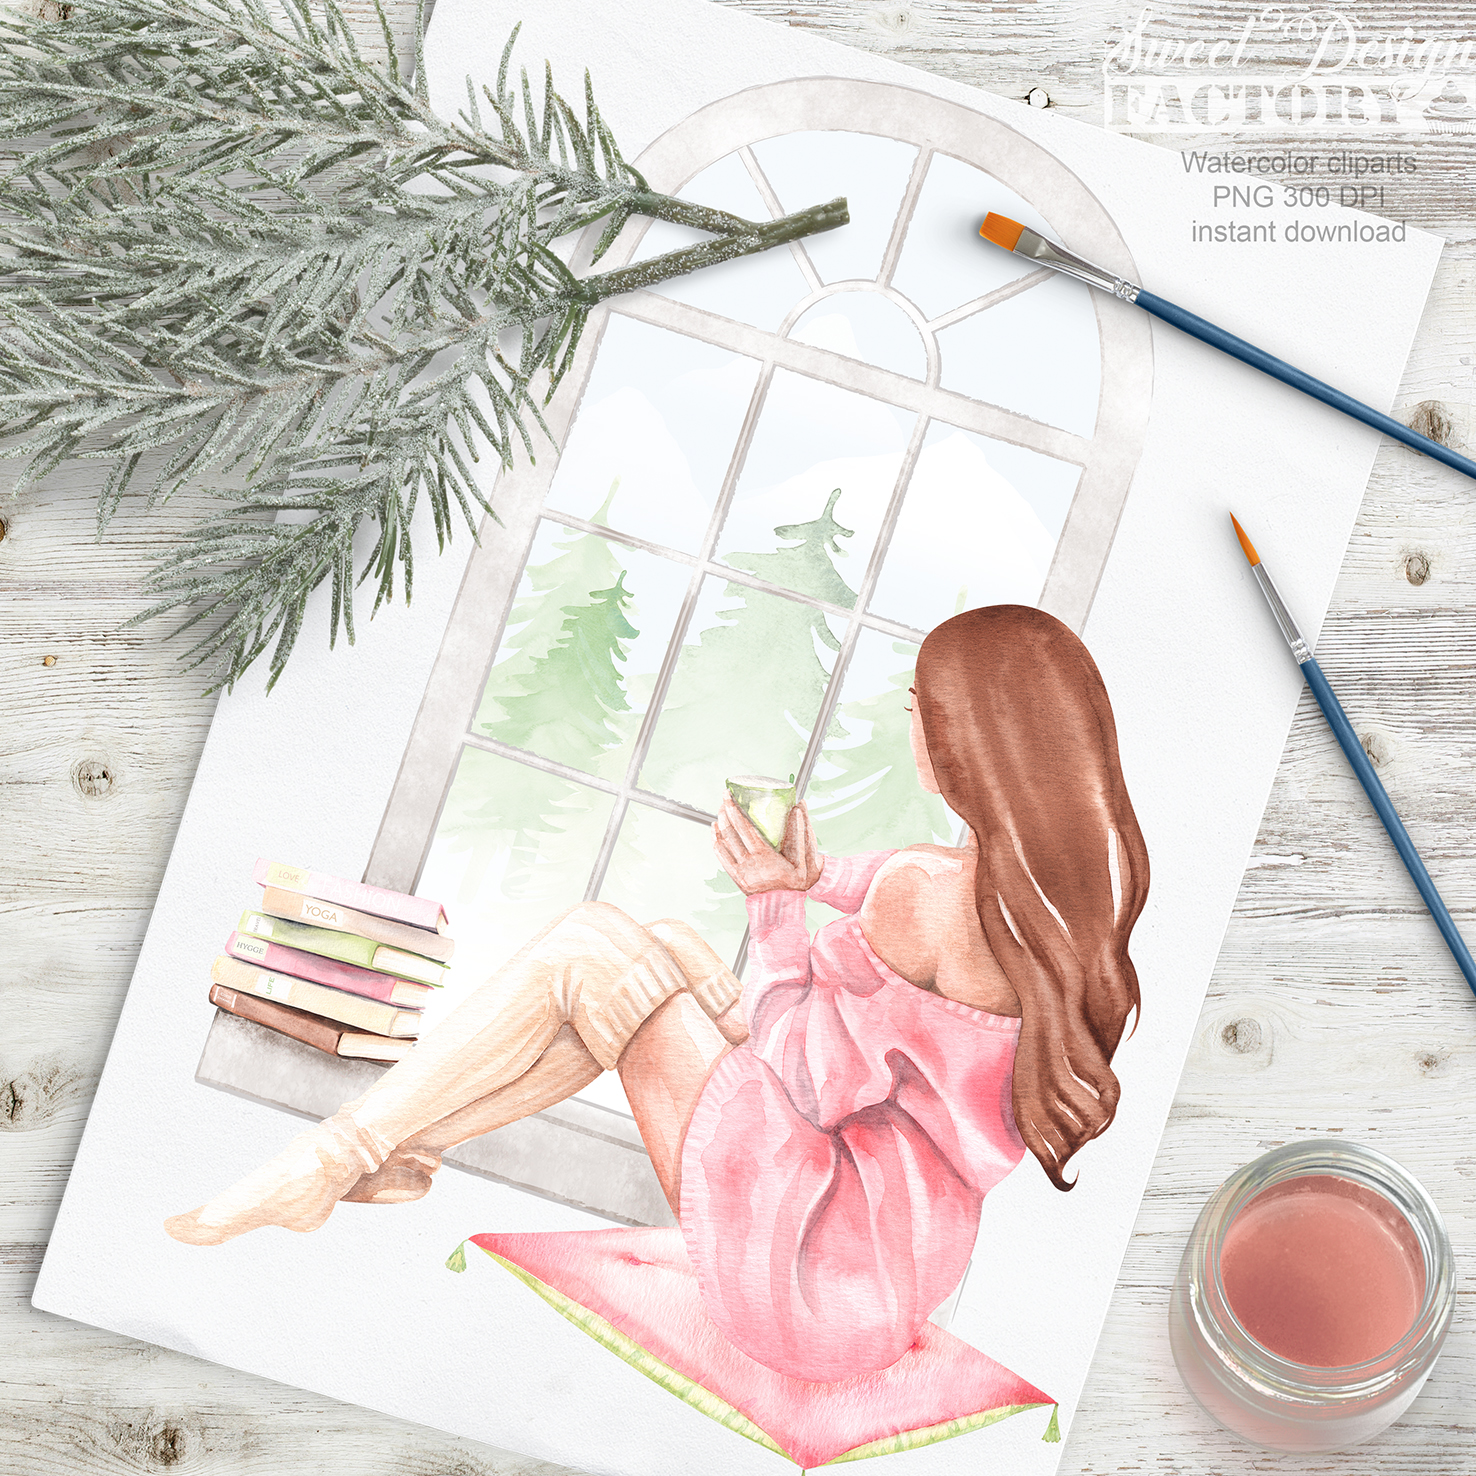 Cozy winter clipart. example image 6